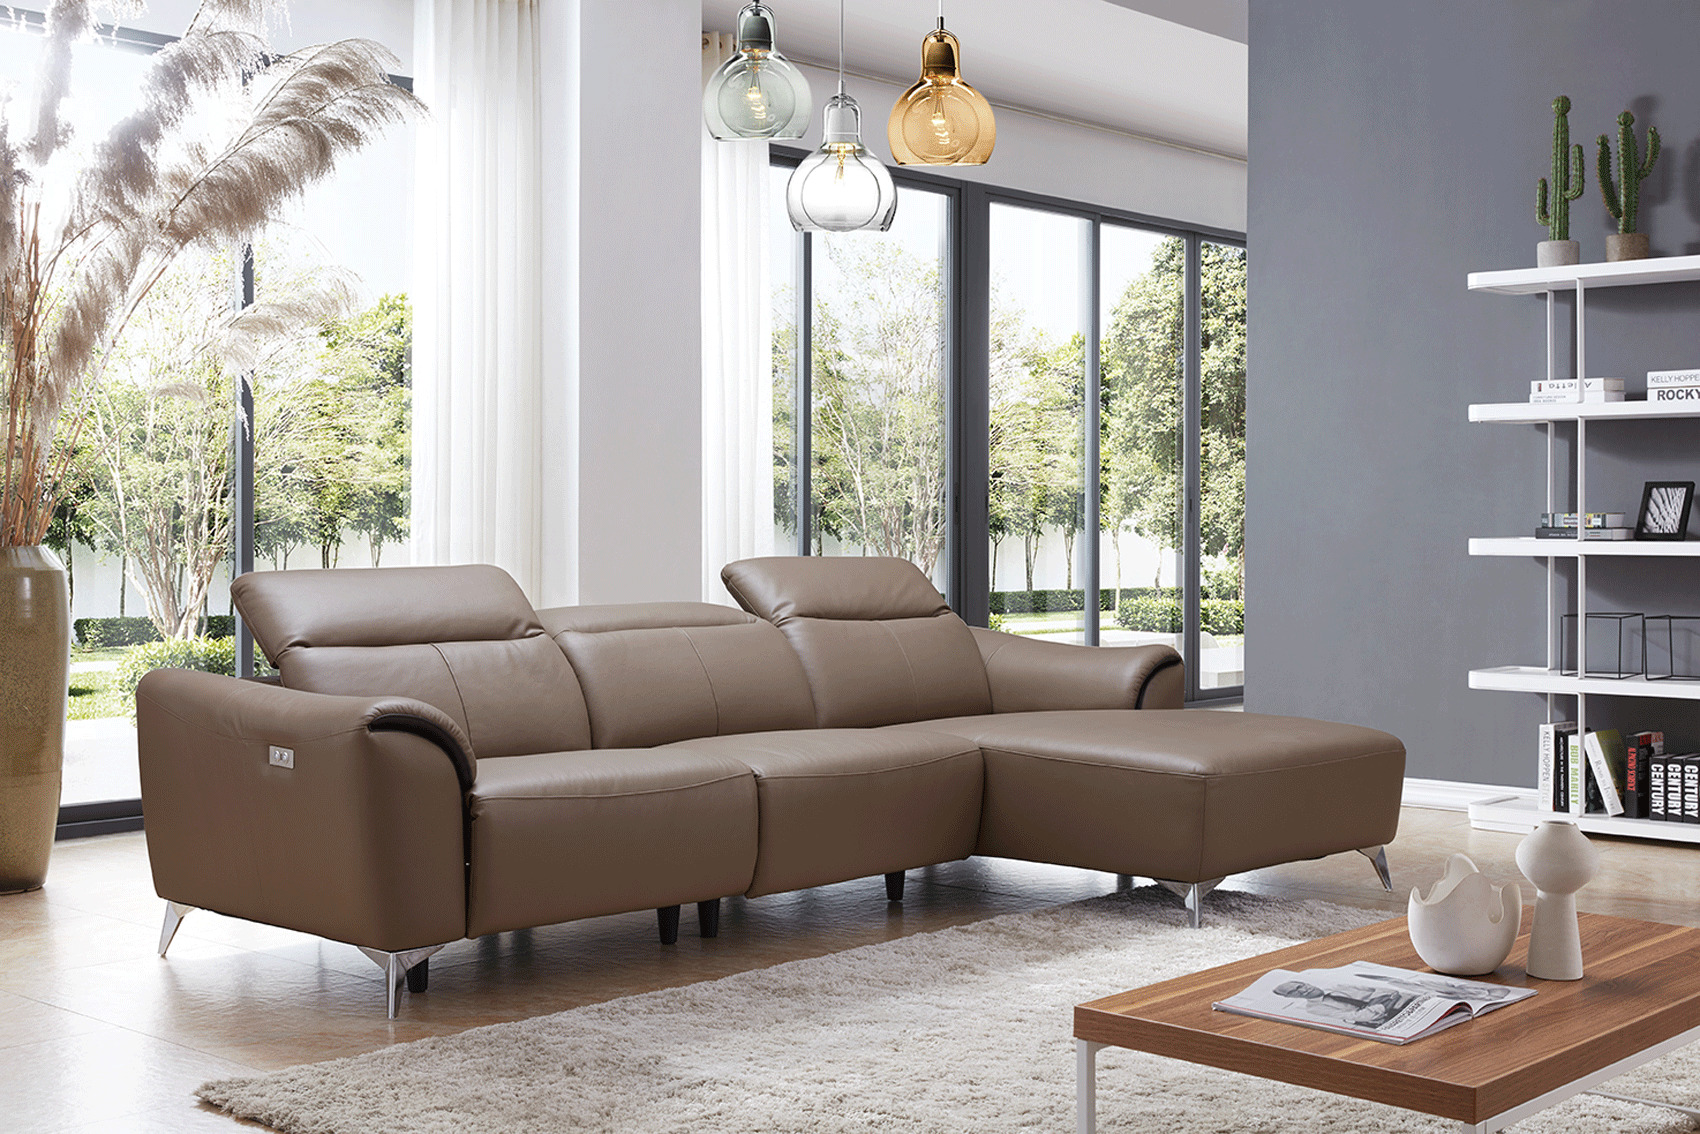 Luxurious Leather Sectional with Chaise